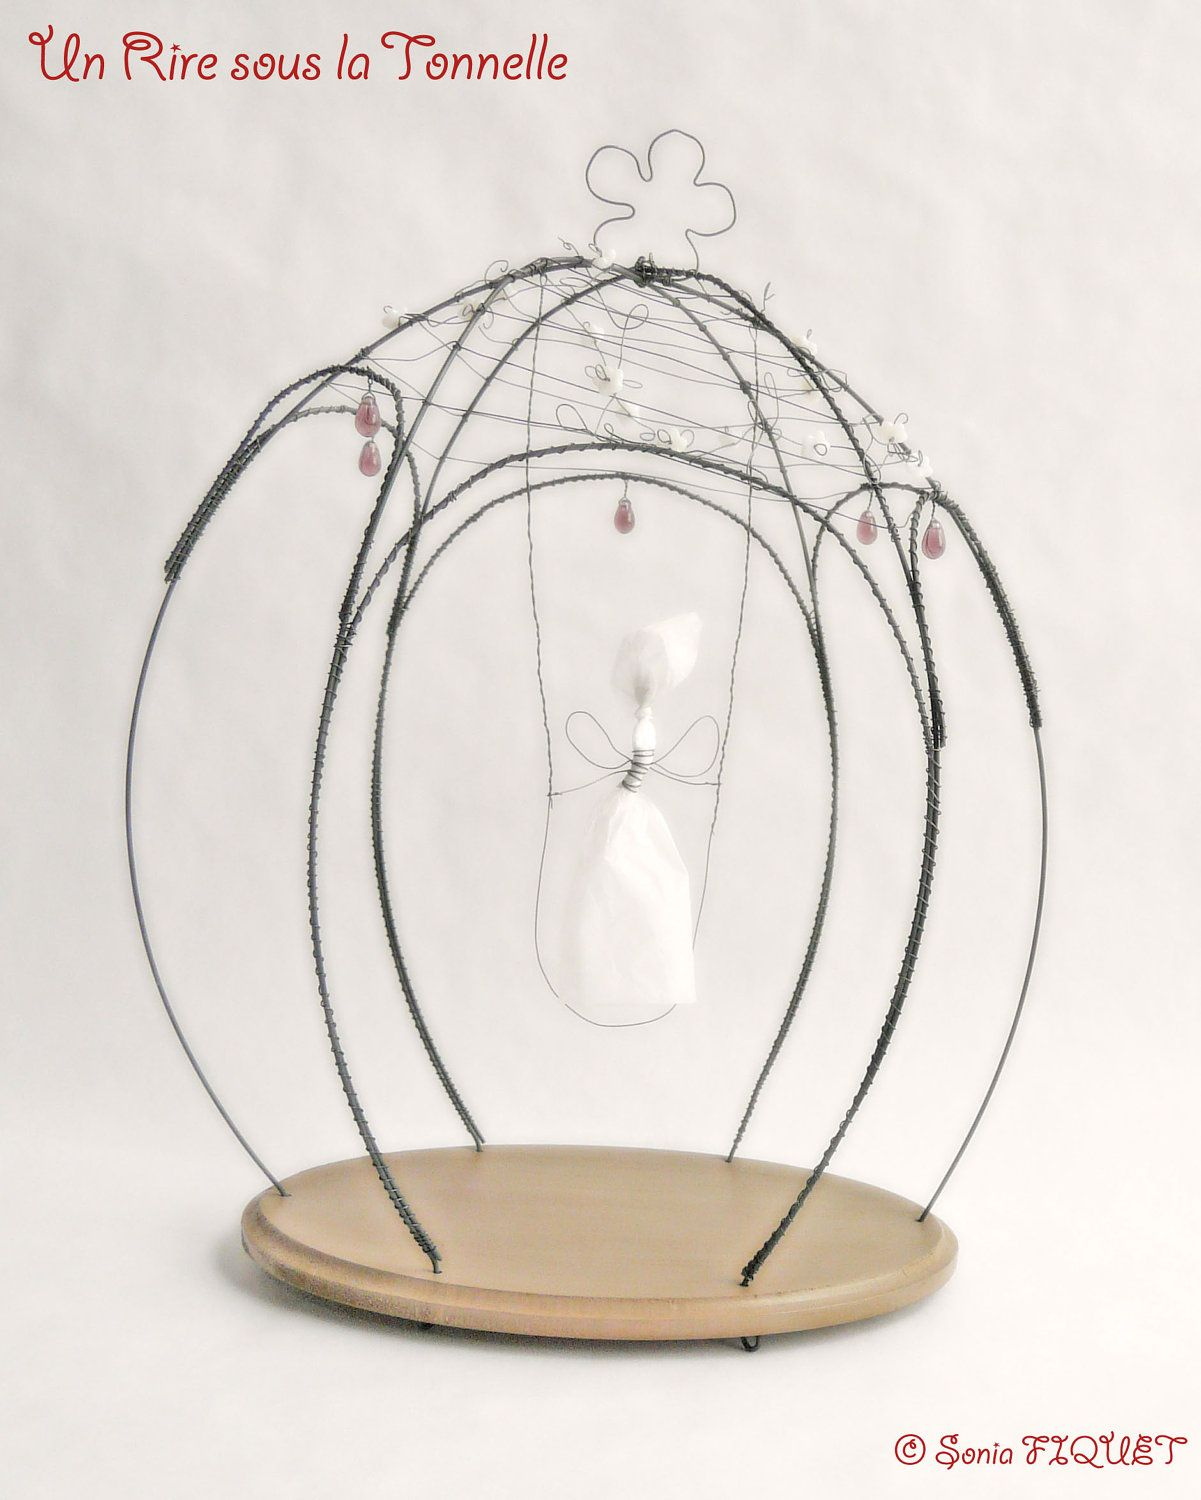 wire cage with paper elf unriresouslatonnelle poetic and playful creations for interior design. Black Bedroom Furniture Sets. Home Design Ideas